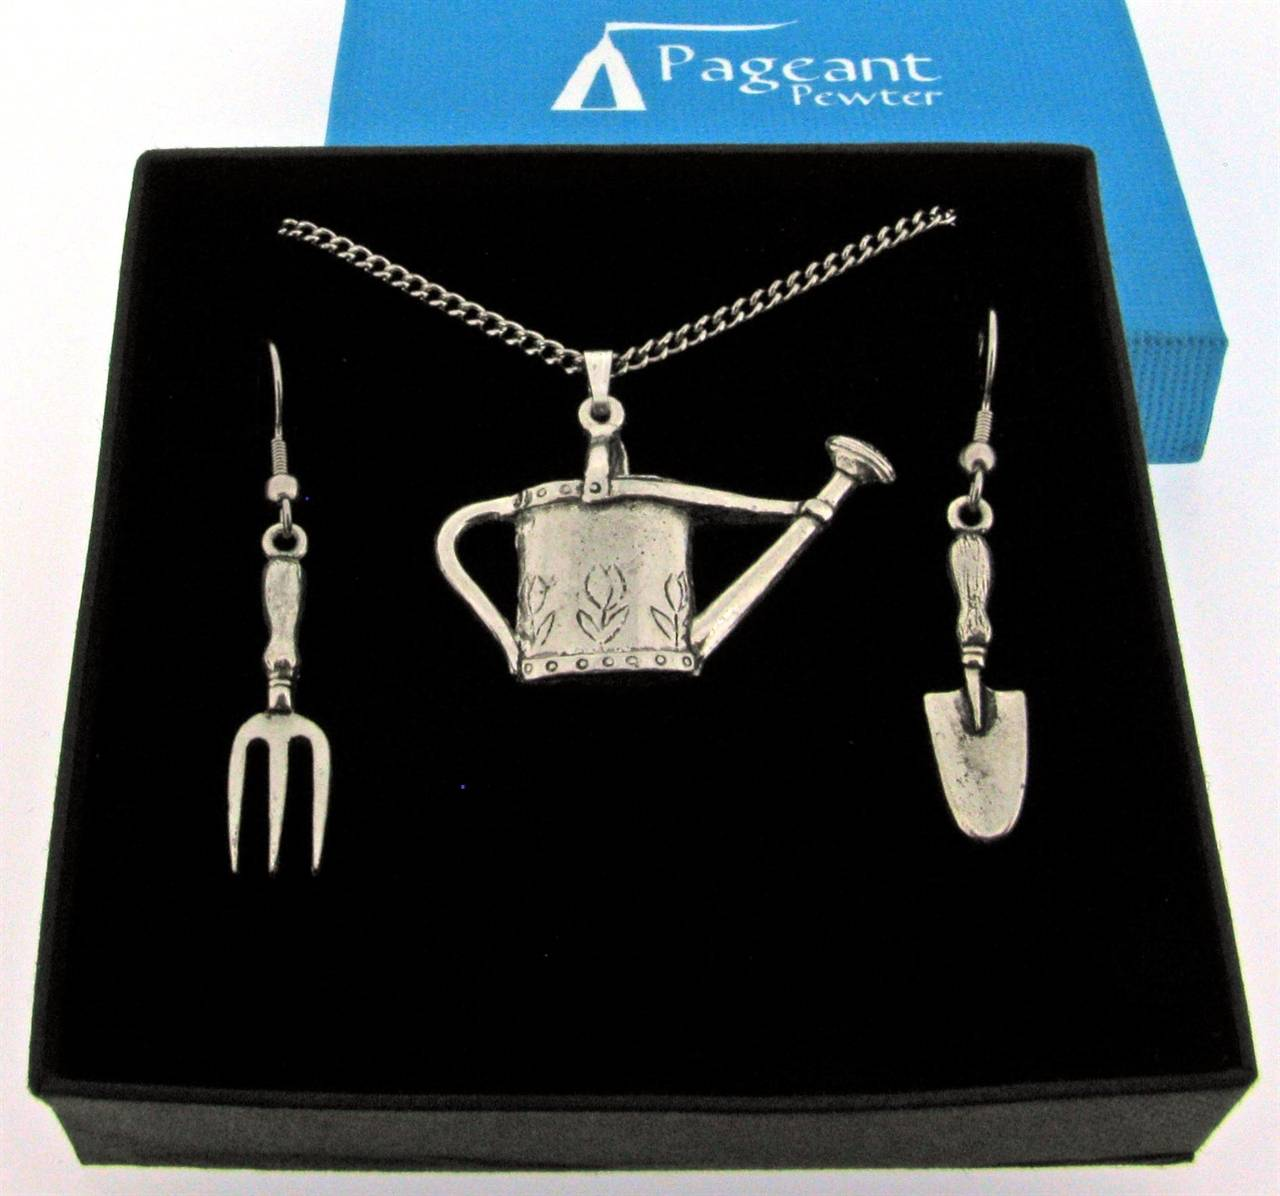 Gardening Jewellery Gift Set - high quality pewter gifts from Pageant Pewter  sc 1 st  Pageant Pewter & Gardening Jewellery Gift Set - high quality pewter gifts from ...